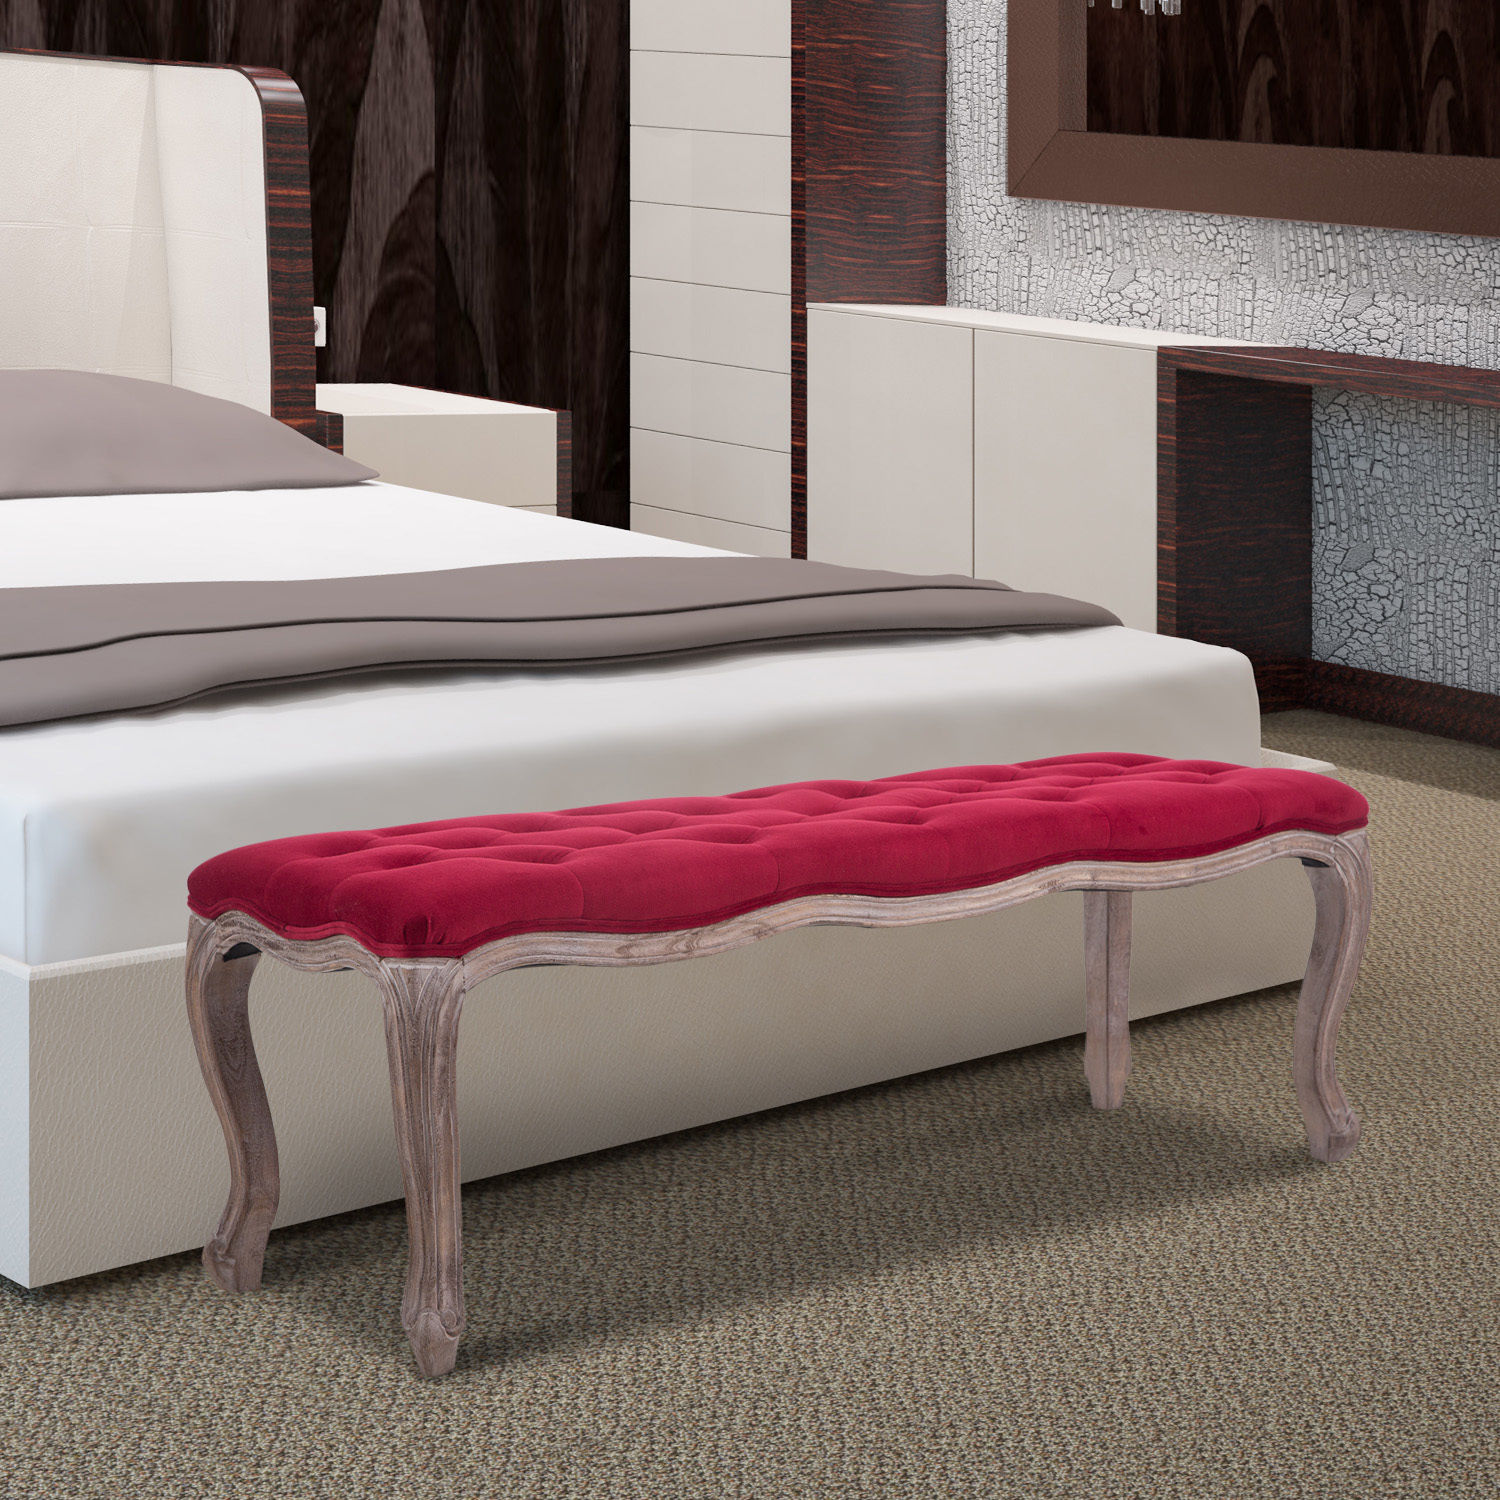 chairs for the end of your bed las vegas office upholstered bench tufted seat ottoman wood